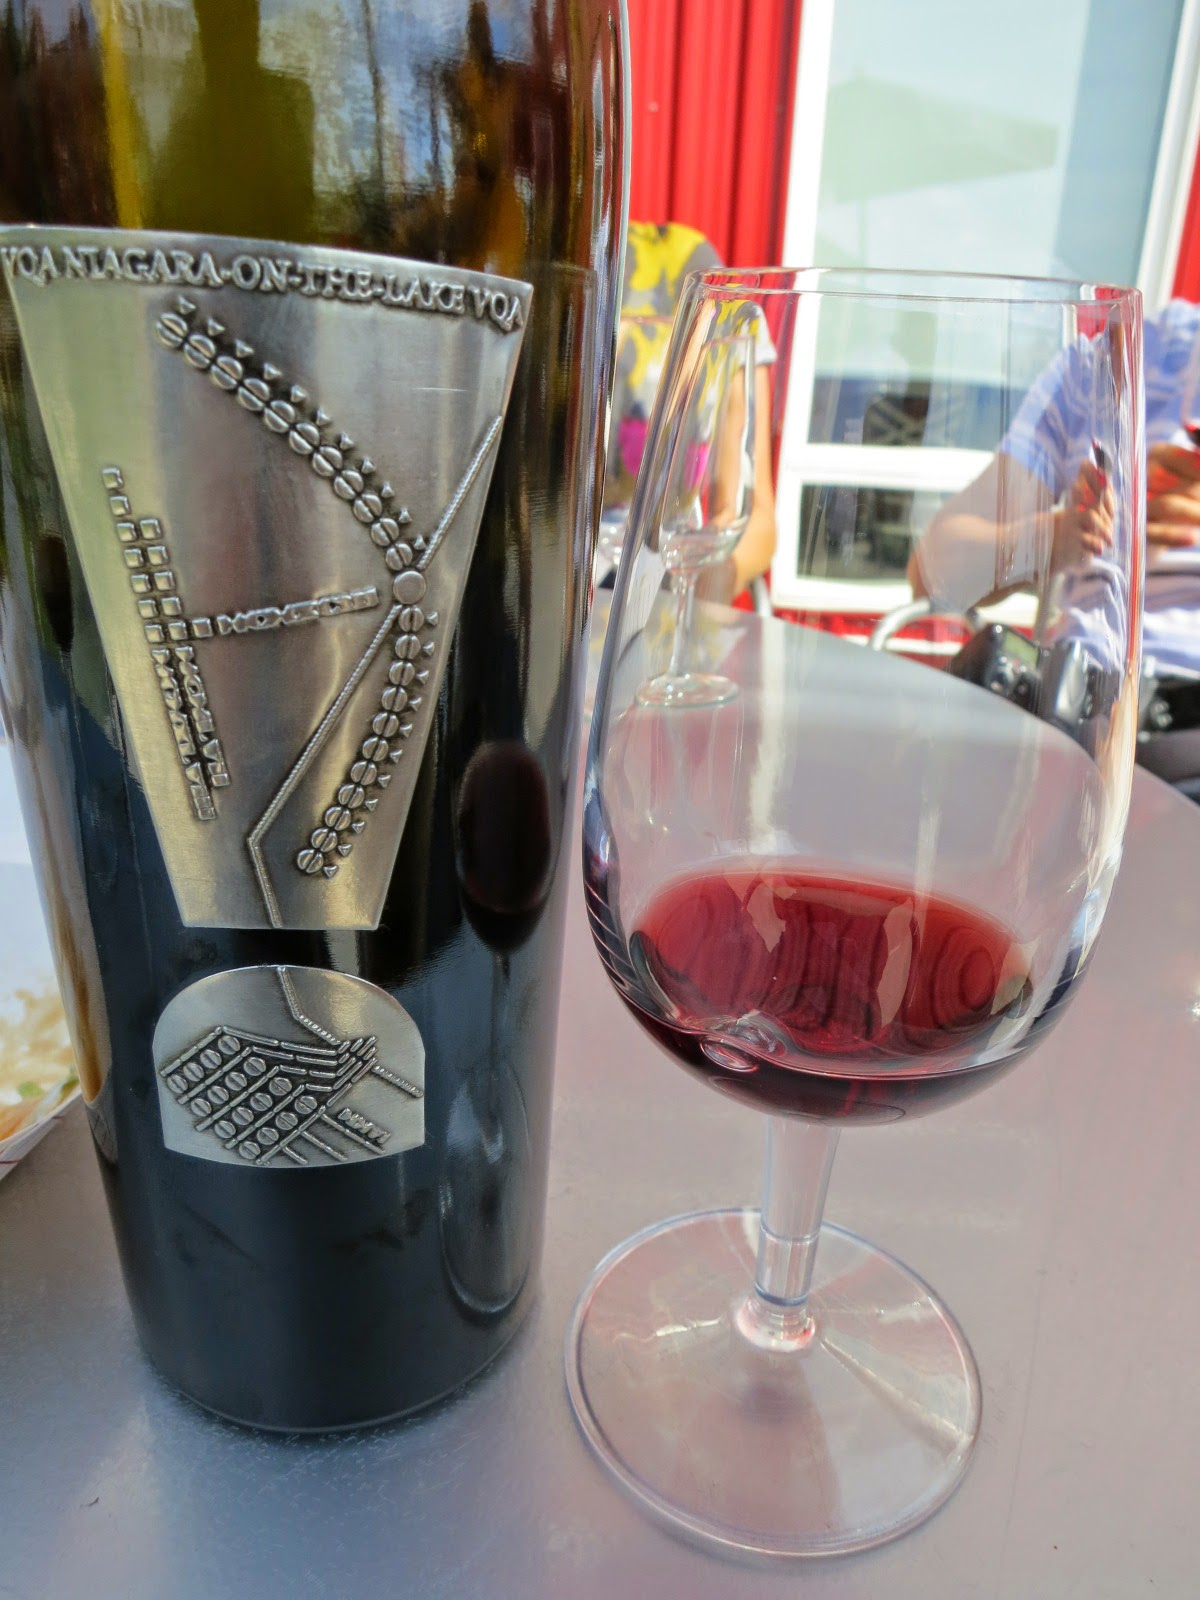 Wine Review of 2010 Pillitteri Exclamation Cabernet Sauvignon from VQA Niagara-on-the-Lake